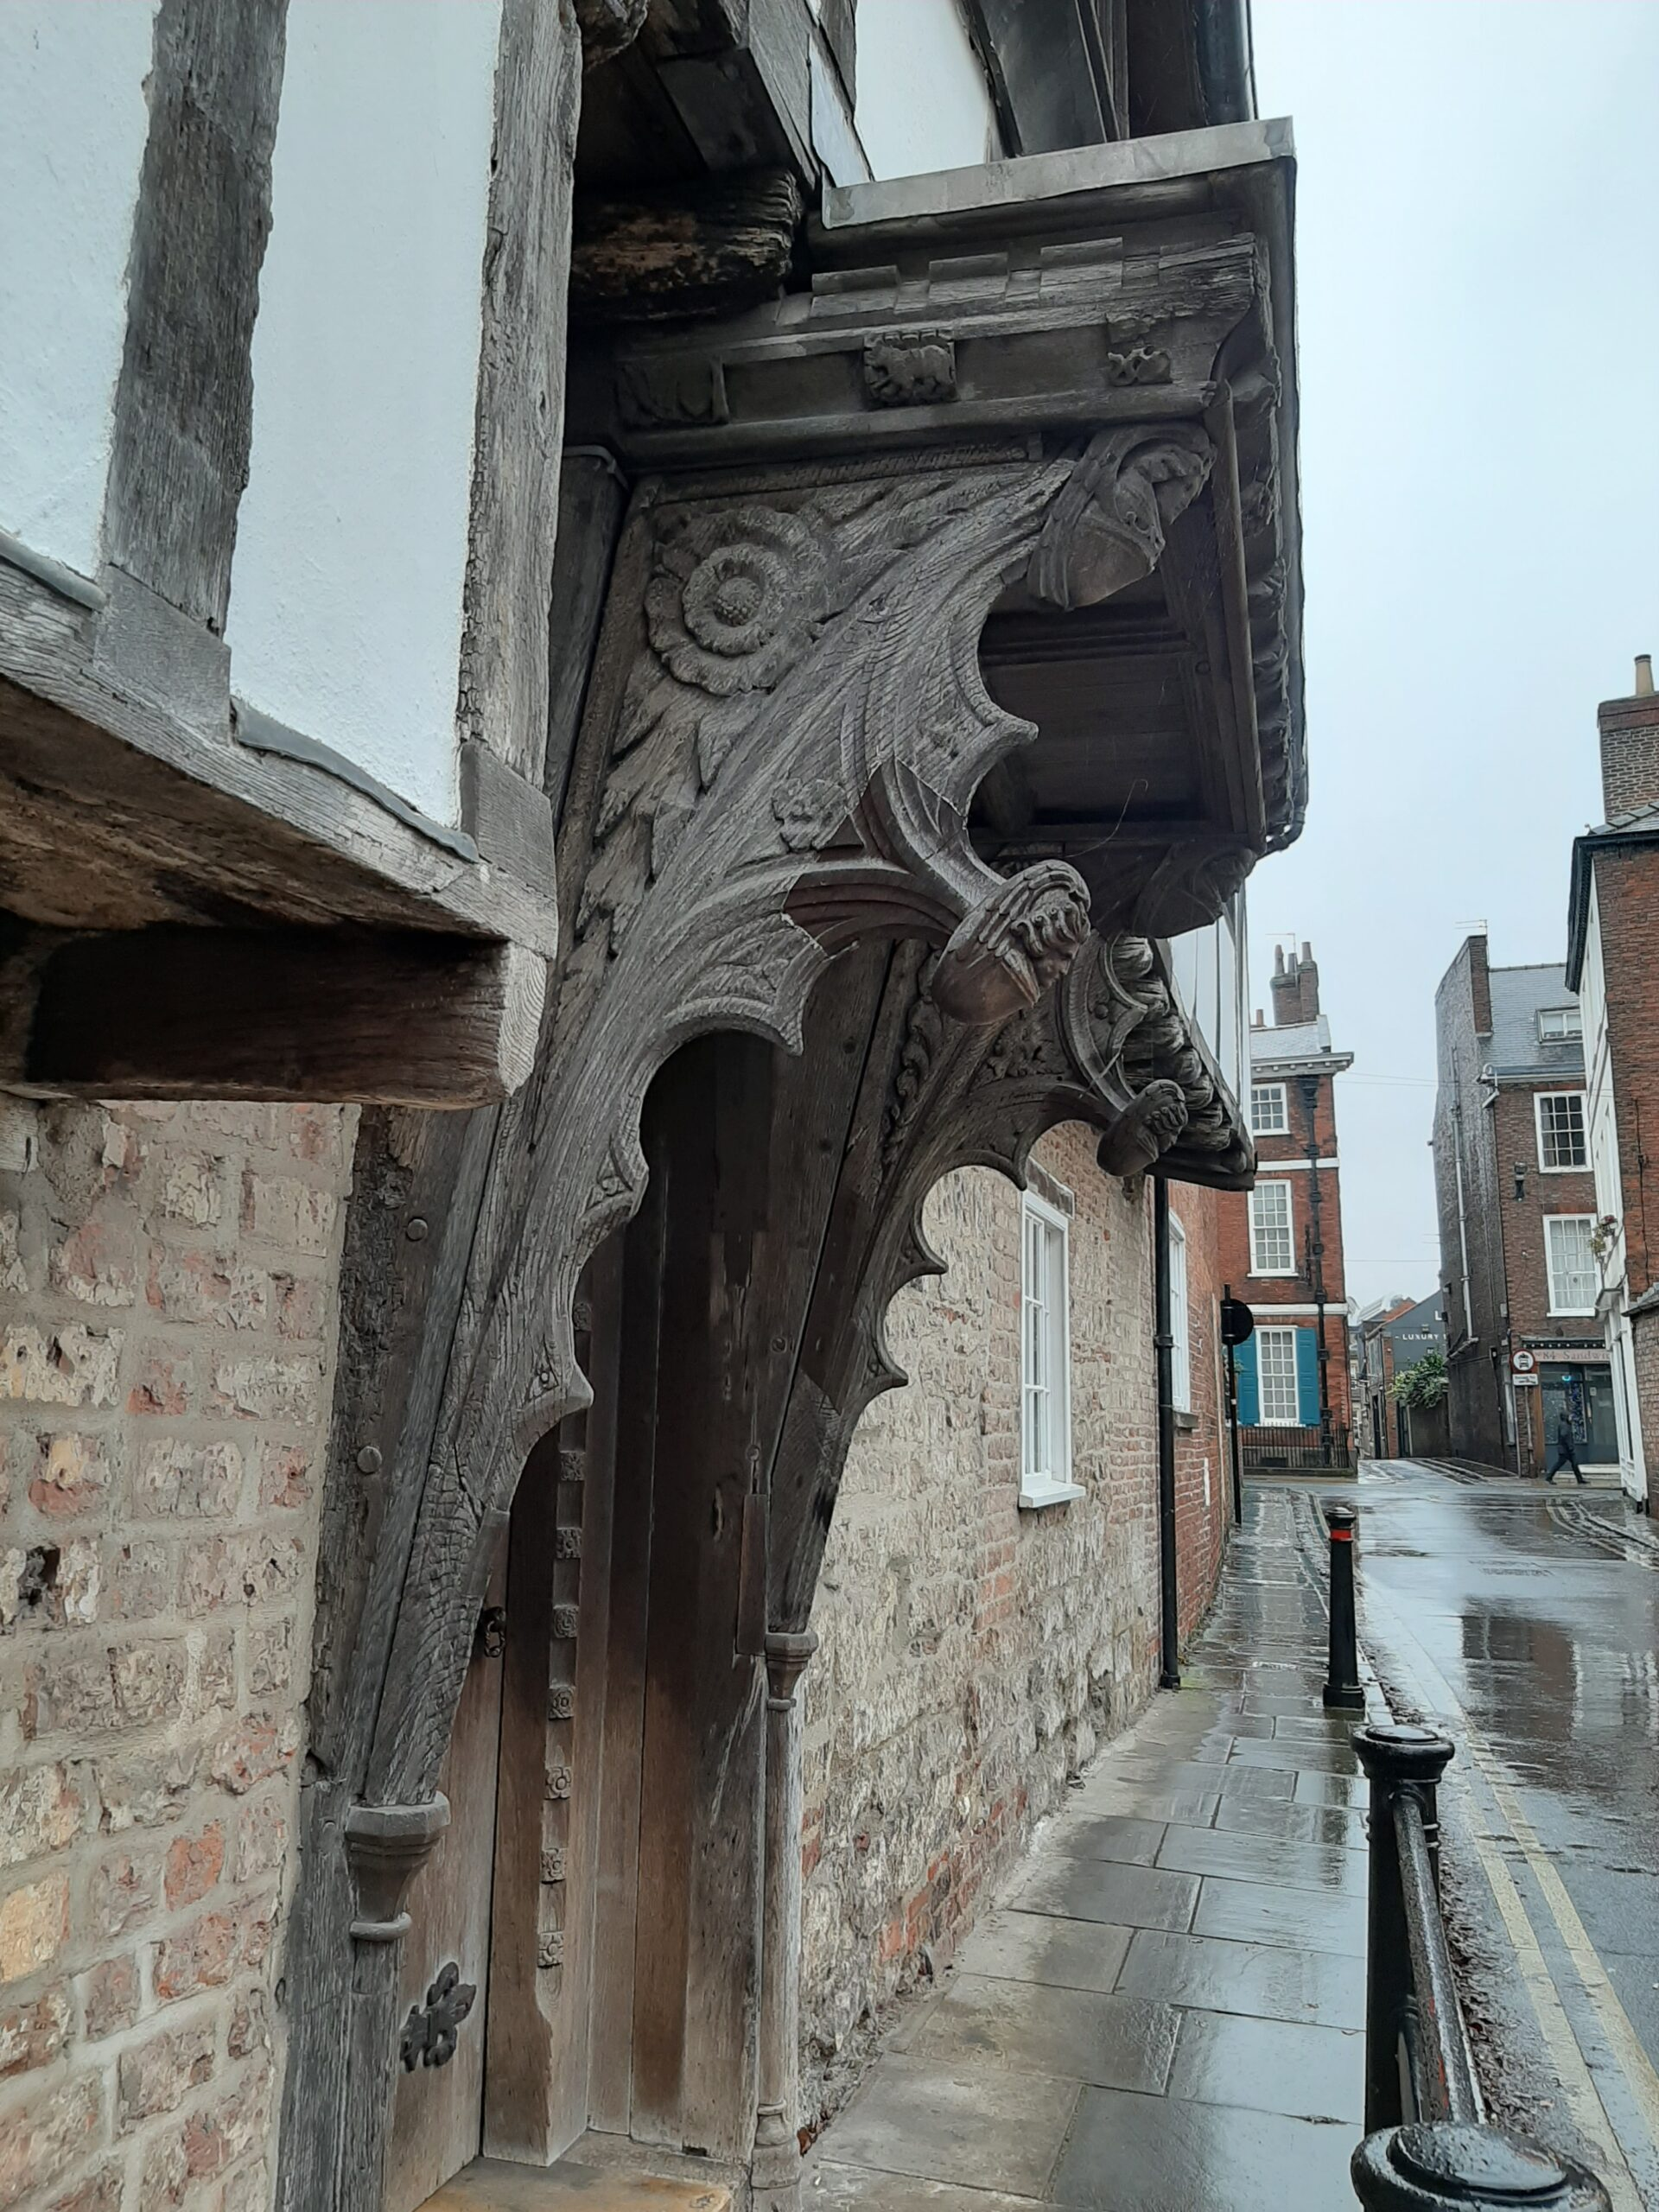 Detail Jacob's Well, Trinity Lane, Micklegate